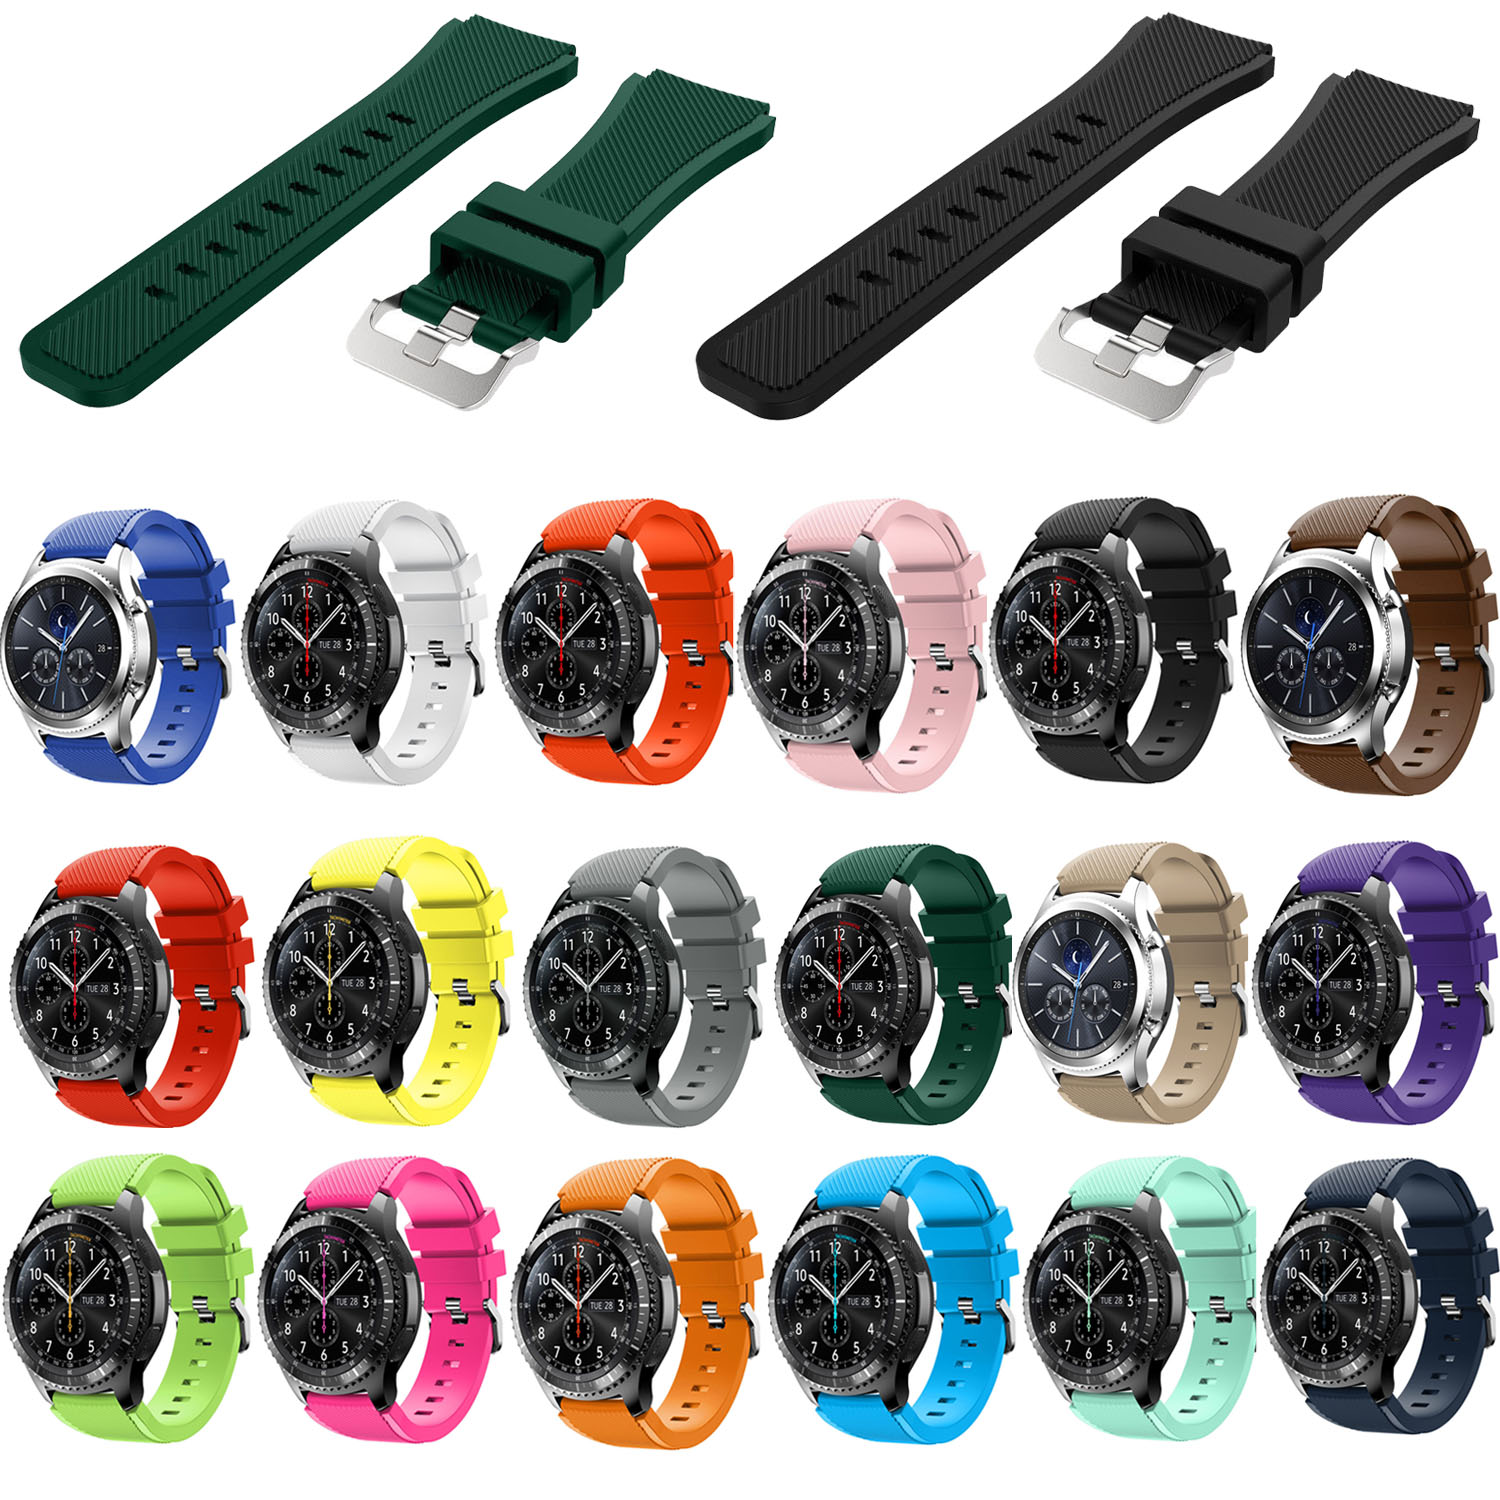 18 Colors Rubber Wrist Strap for Samsung Gear S3 Frontier Silicone Watch Band for Samsung Gear S3 Classic Bracelet Band 22mm assembled tas5630 2 1 digital amplifier board 300w 150w 150w